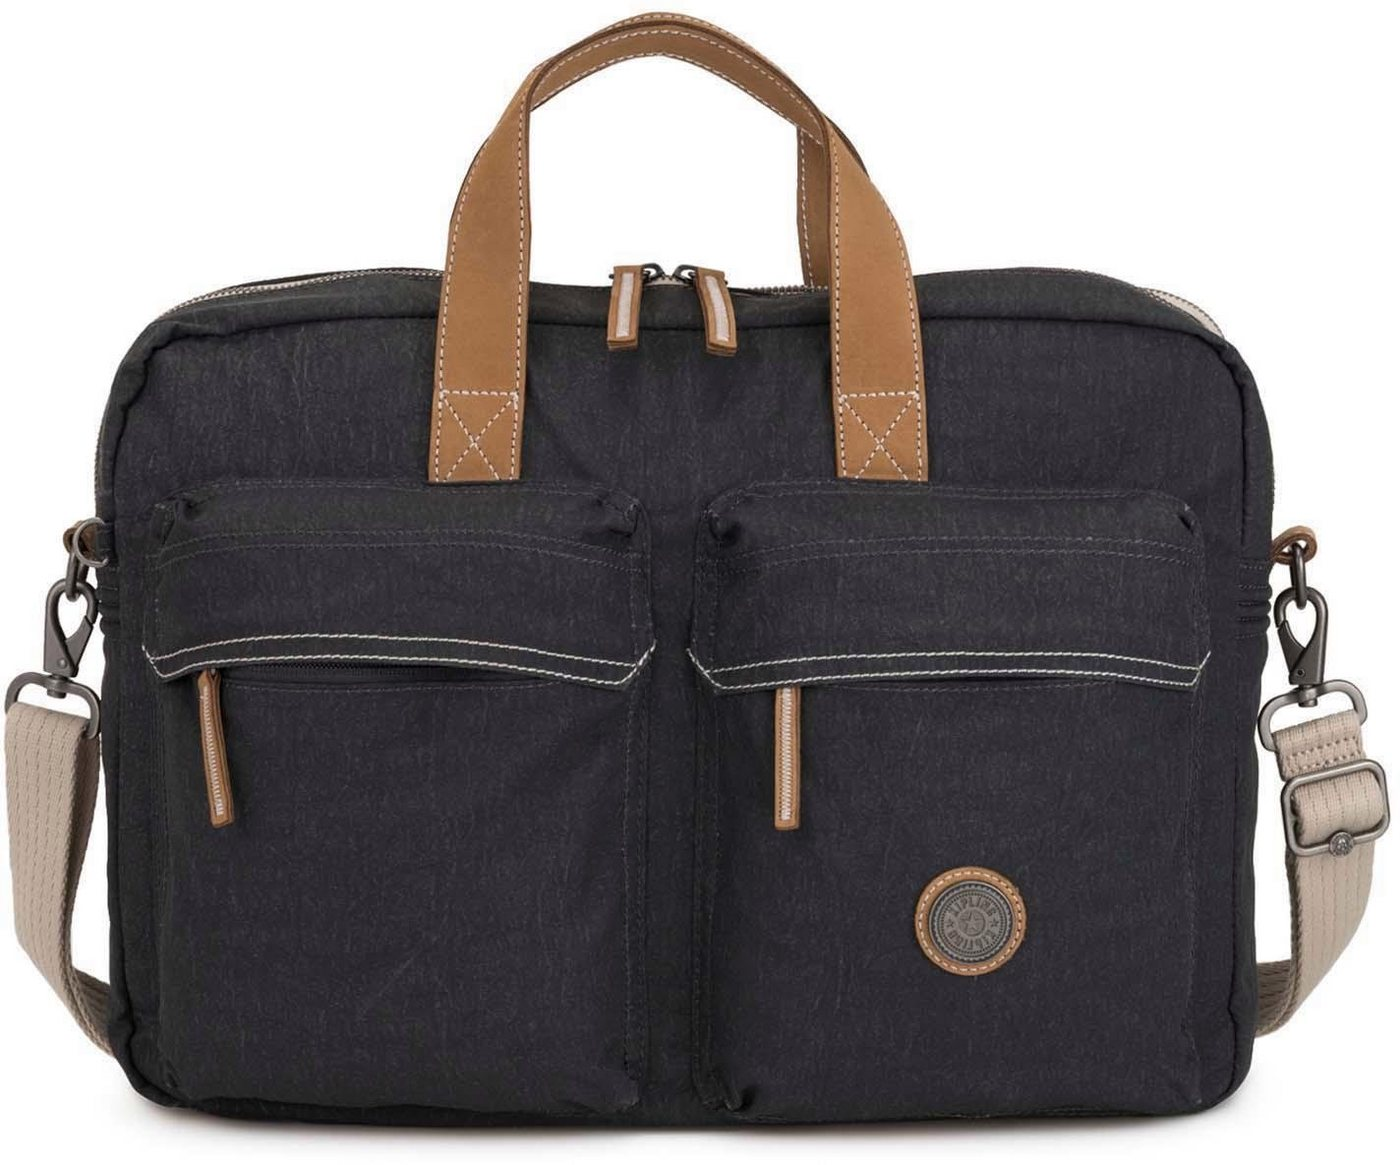 Businesstaschen - KIPLING Laptoptasche »Khoto, Casual grey« ›  - Onlineshop OTTO